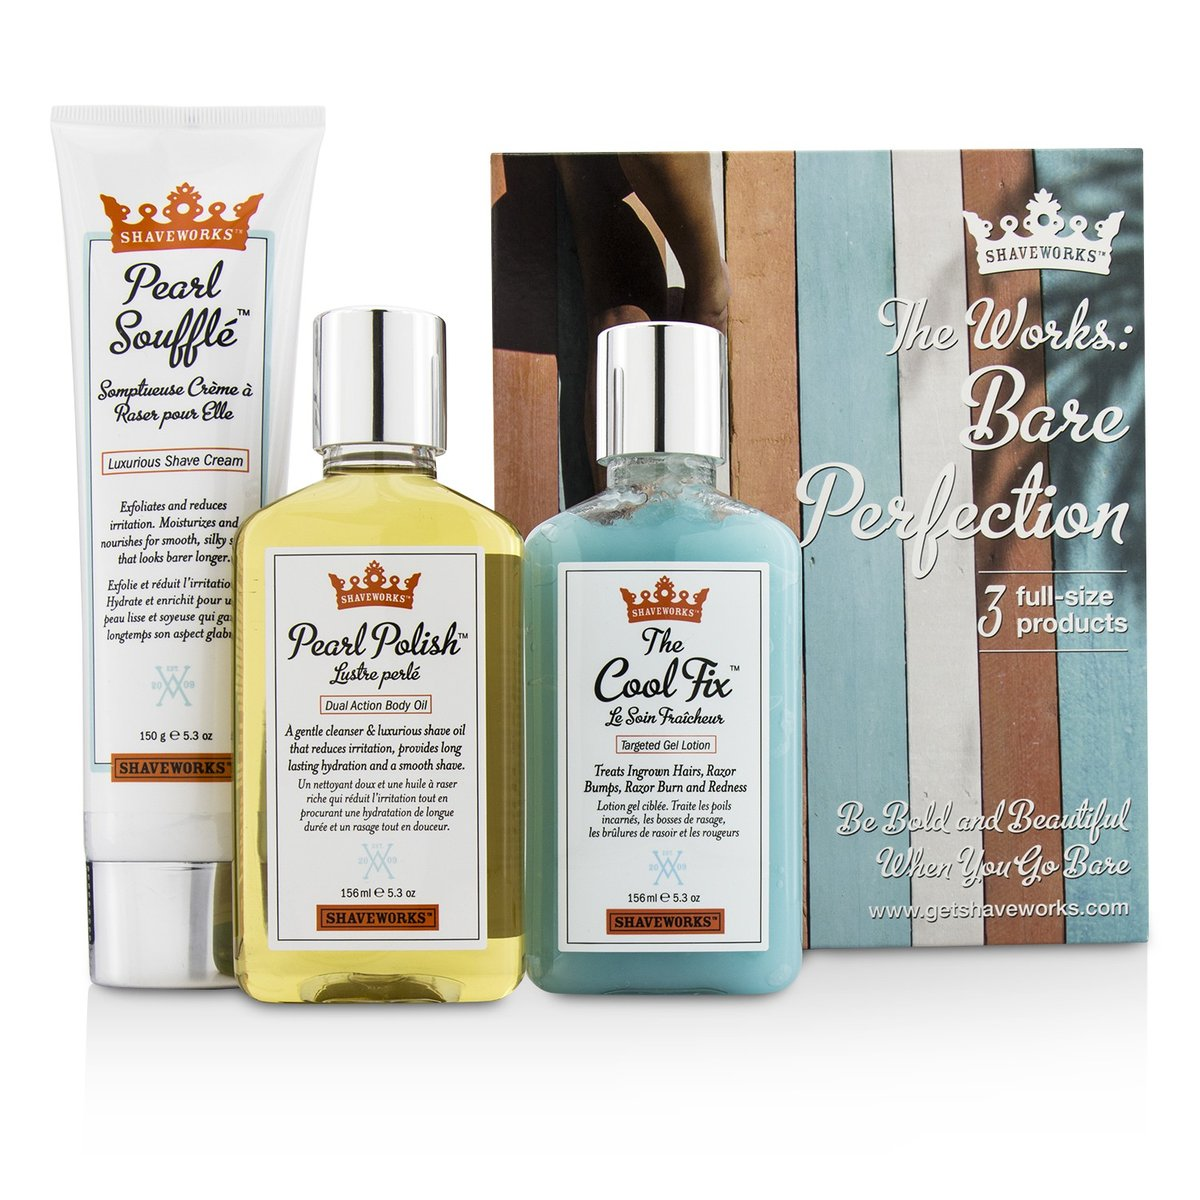 Shaveworks Pearl Polish Dual Action Body Oil Cleanser & Shaving Oil 156ml